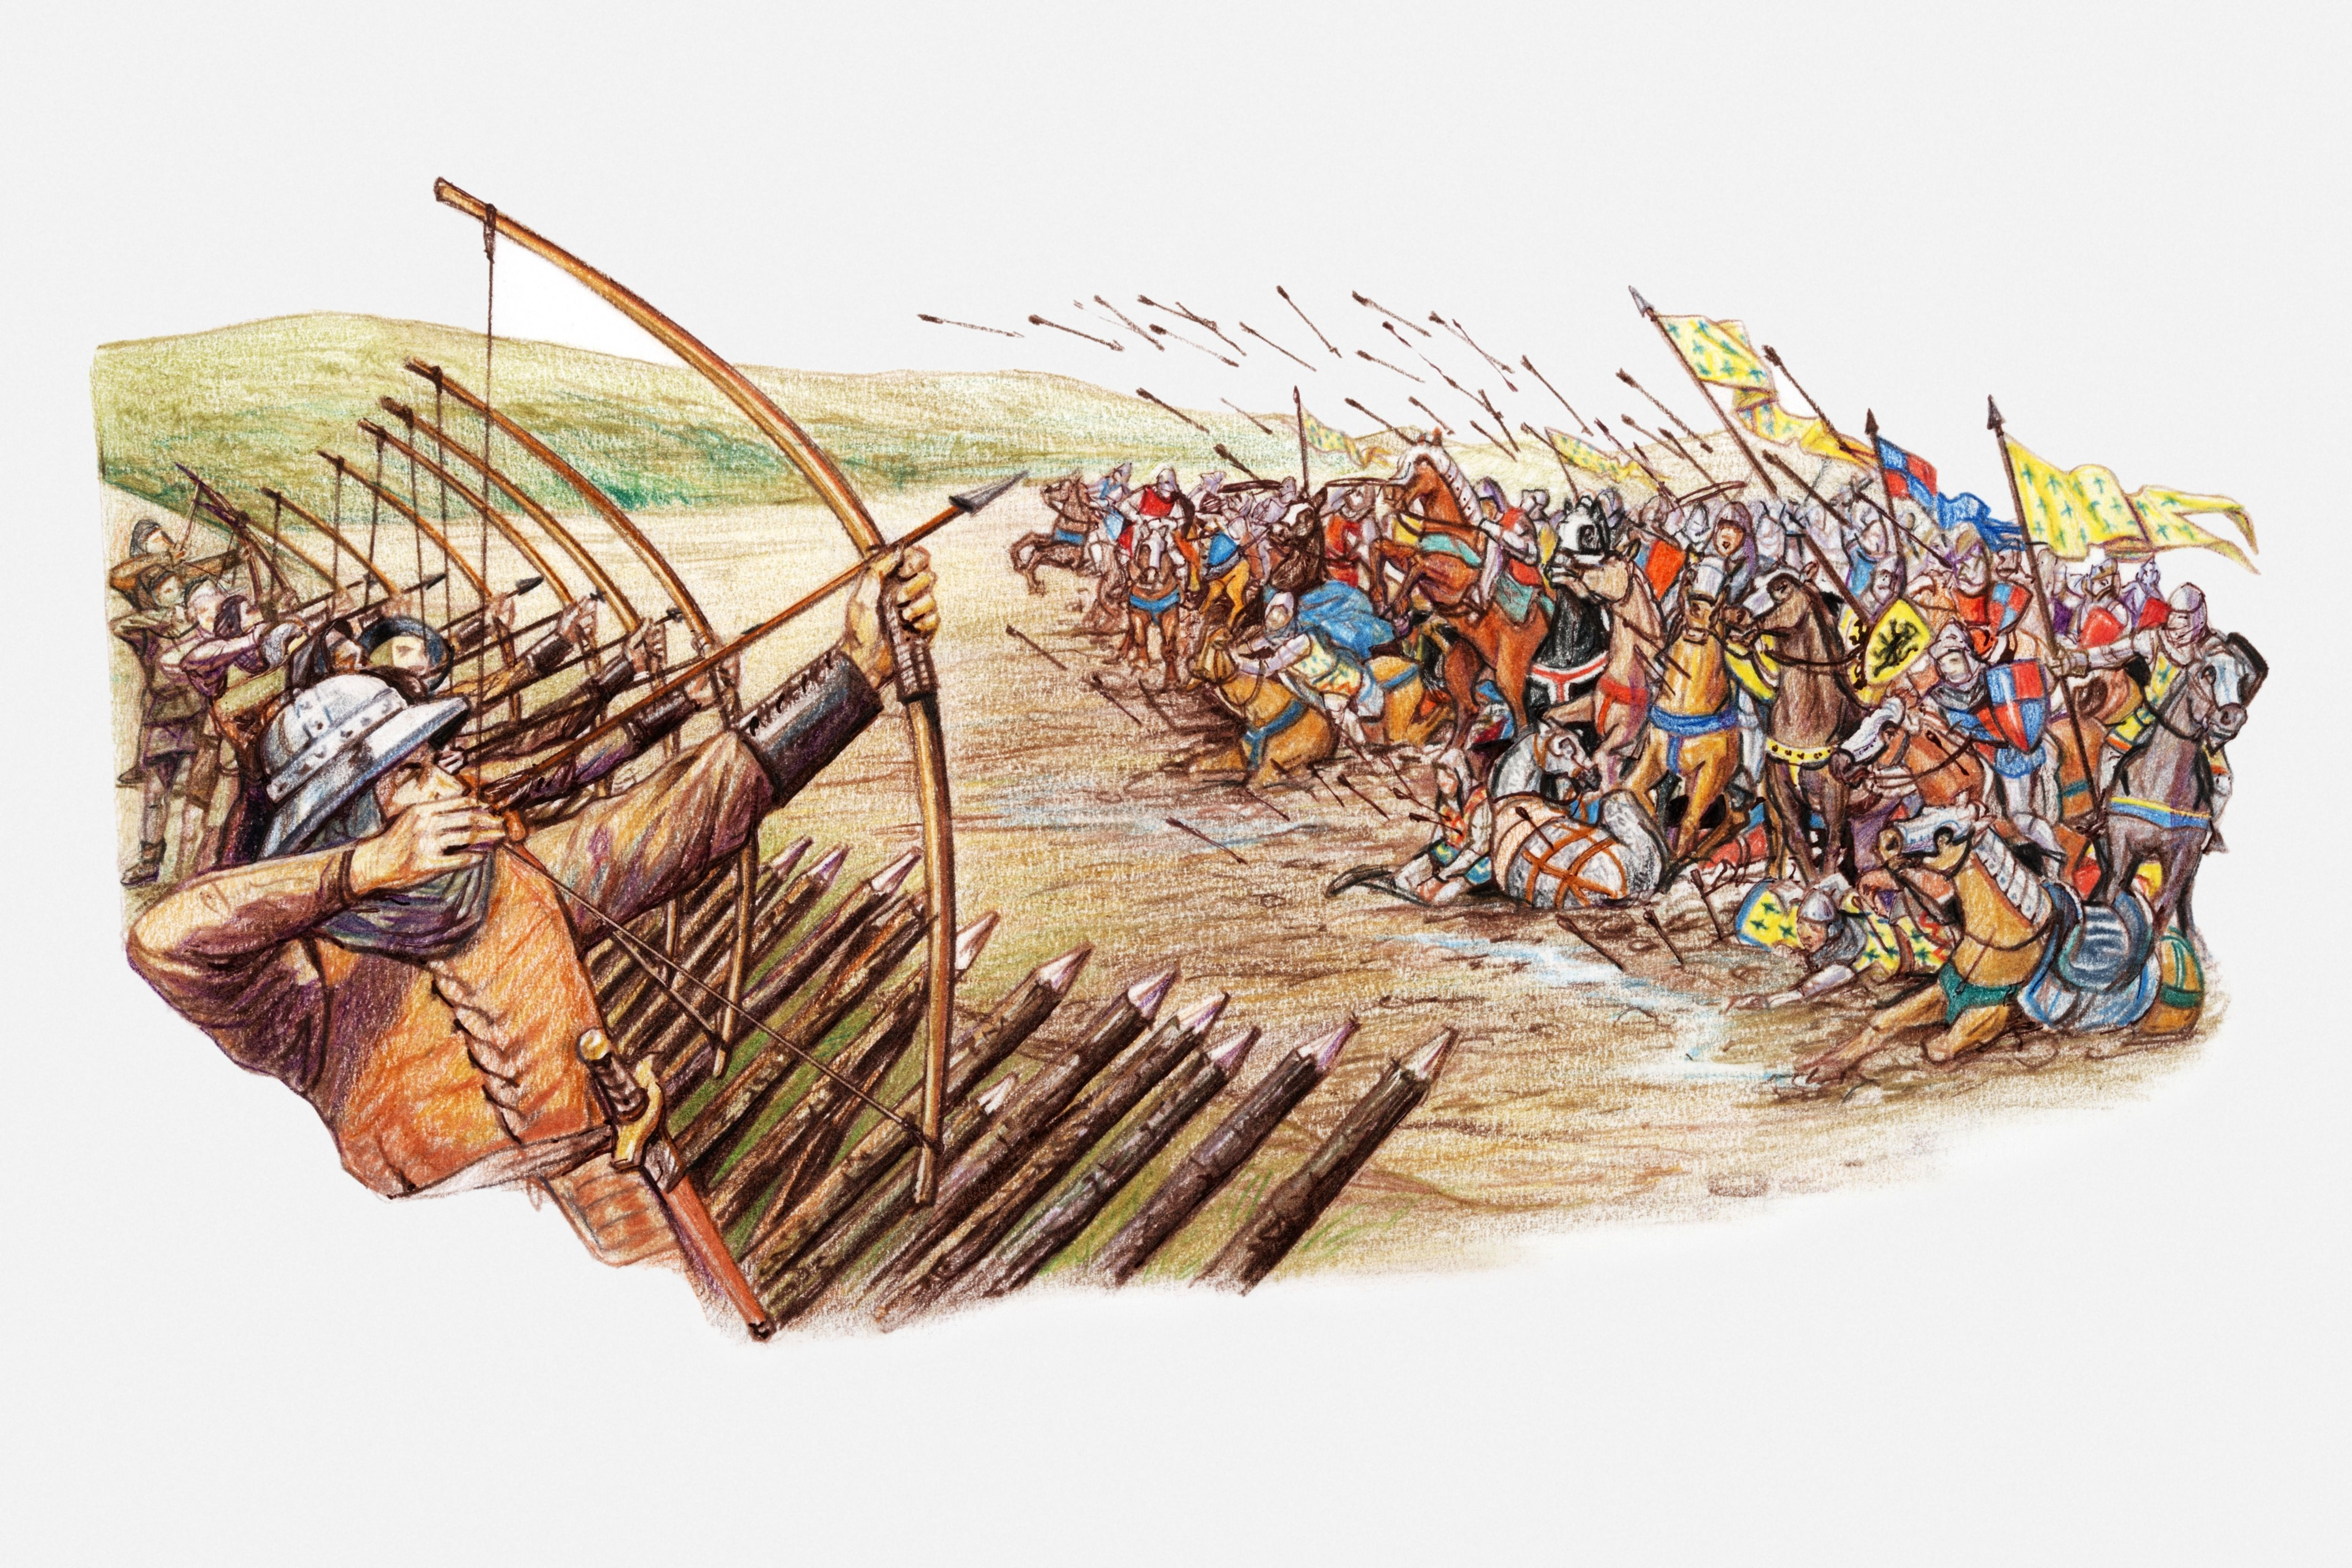 Illustration of English and Welsh archers using cross bows against attacking French army during Hundred Years War